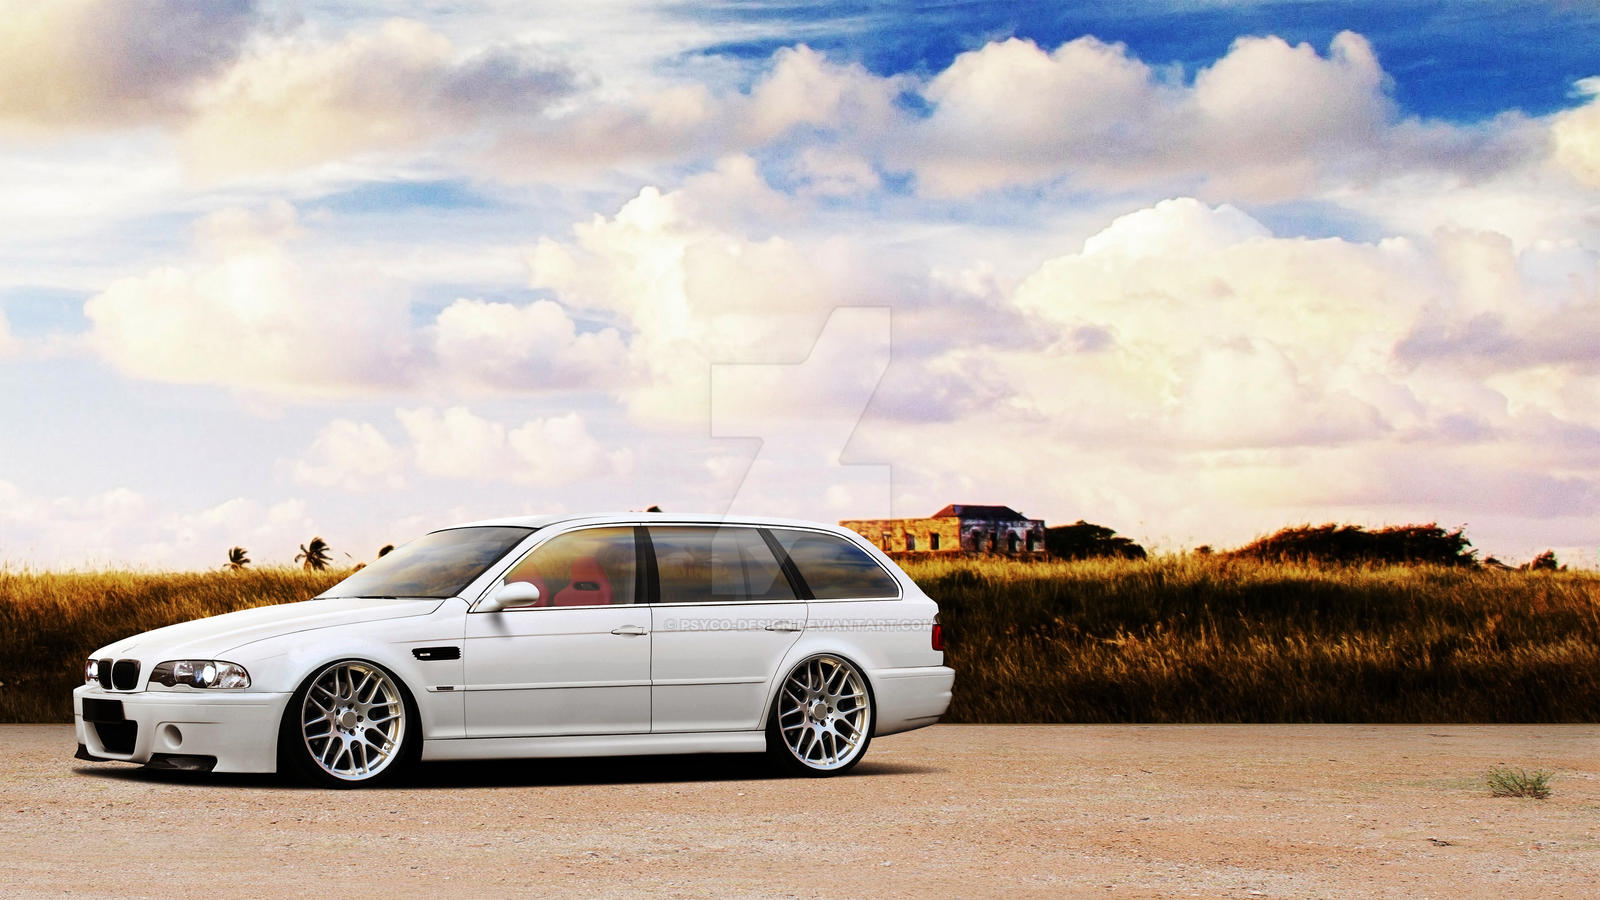 Bmw E46 M3 >> BMW M3 e46 Touring by Psyco-Design on DeviantArt